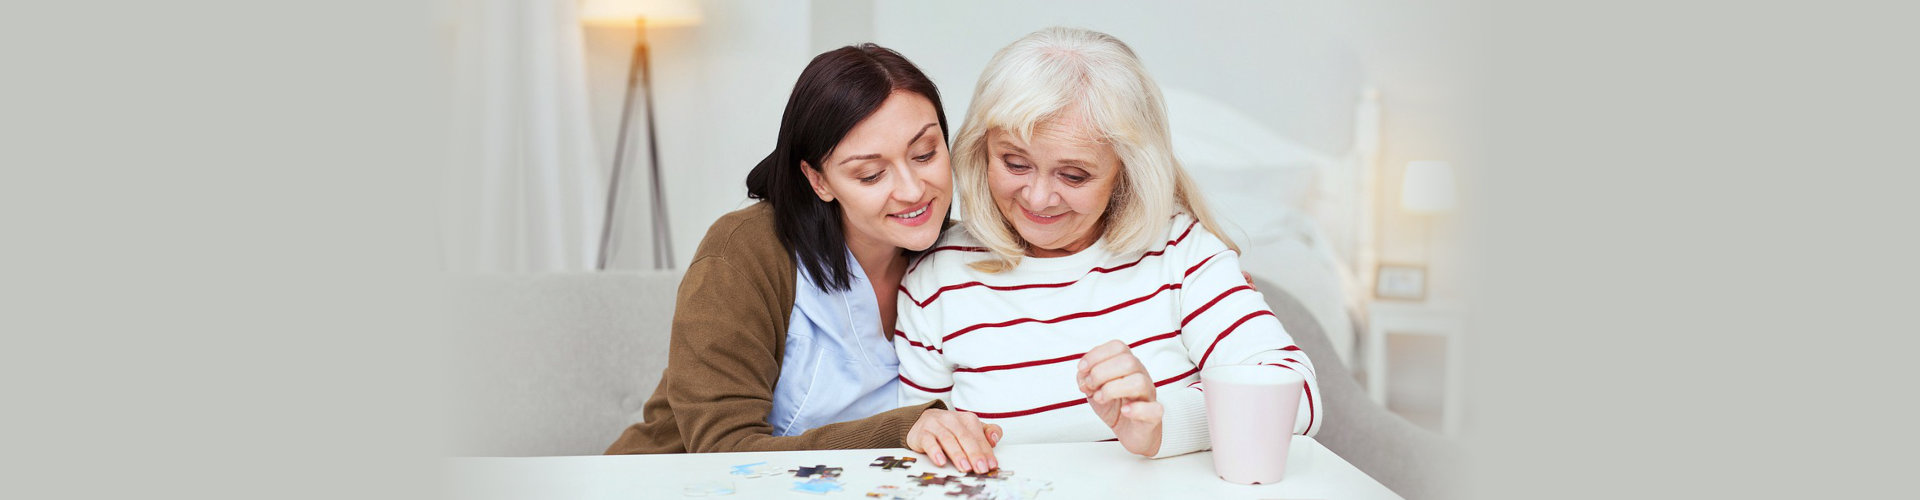 caregiver helps the elderly form a puzzle